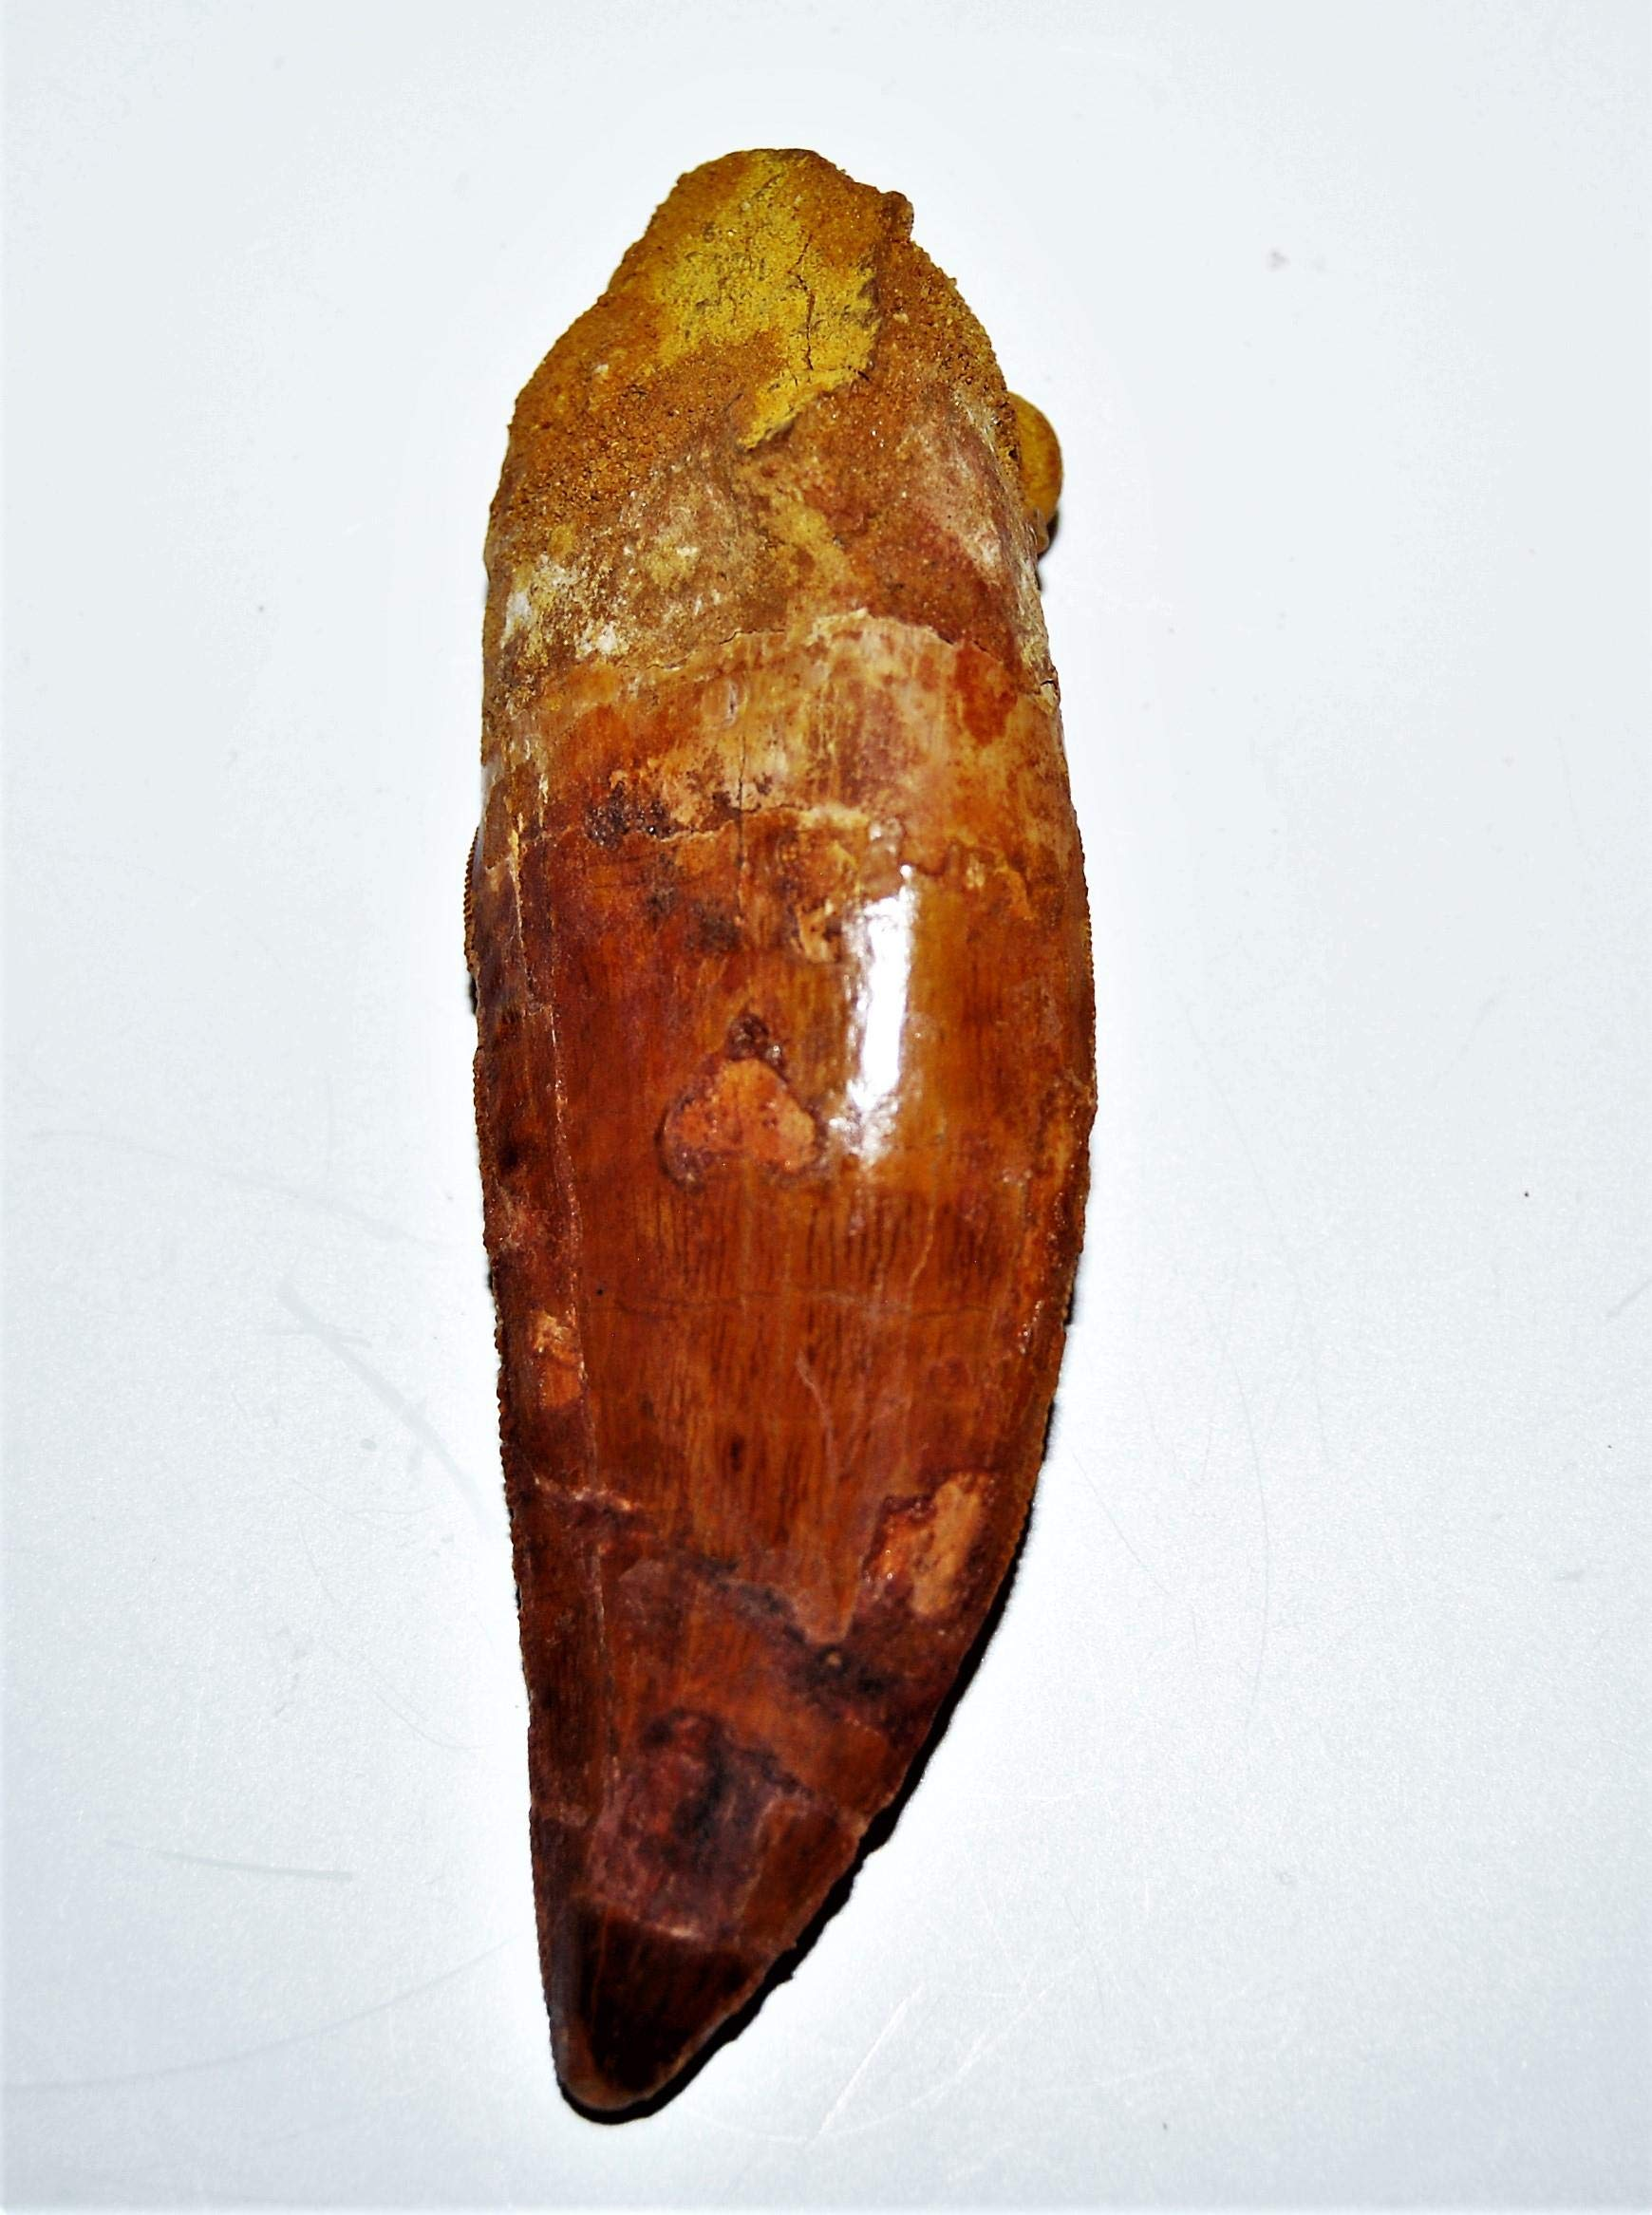 Carcharodontosaurus Dinosaur Tooth 4.087'' Fossil African T-Rex XLDB #14163 22o by Fossils, Meteorites, & More (Image #3)